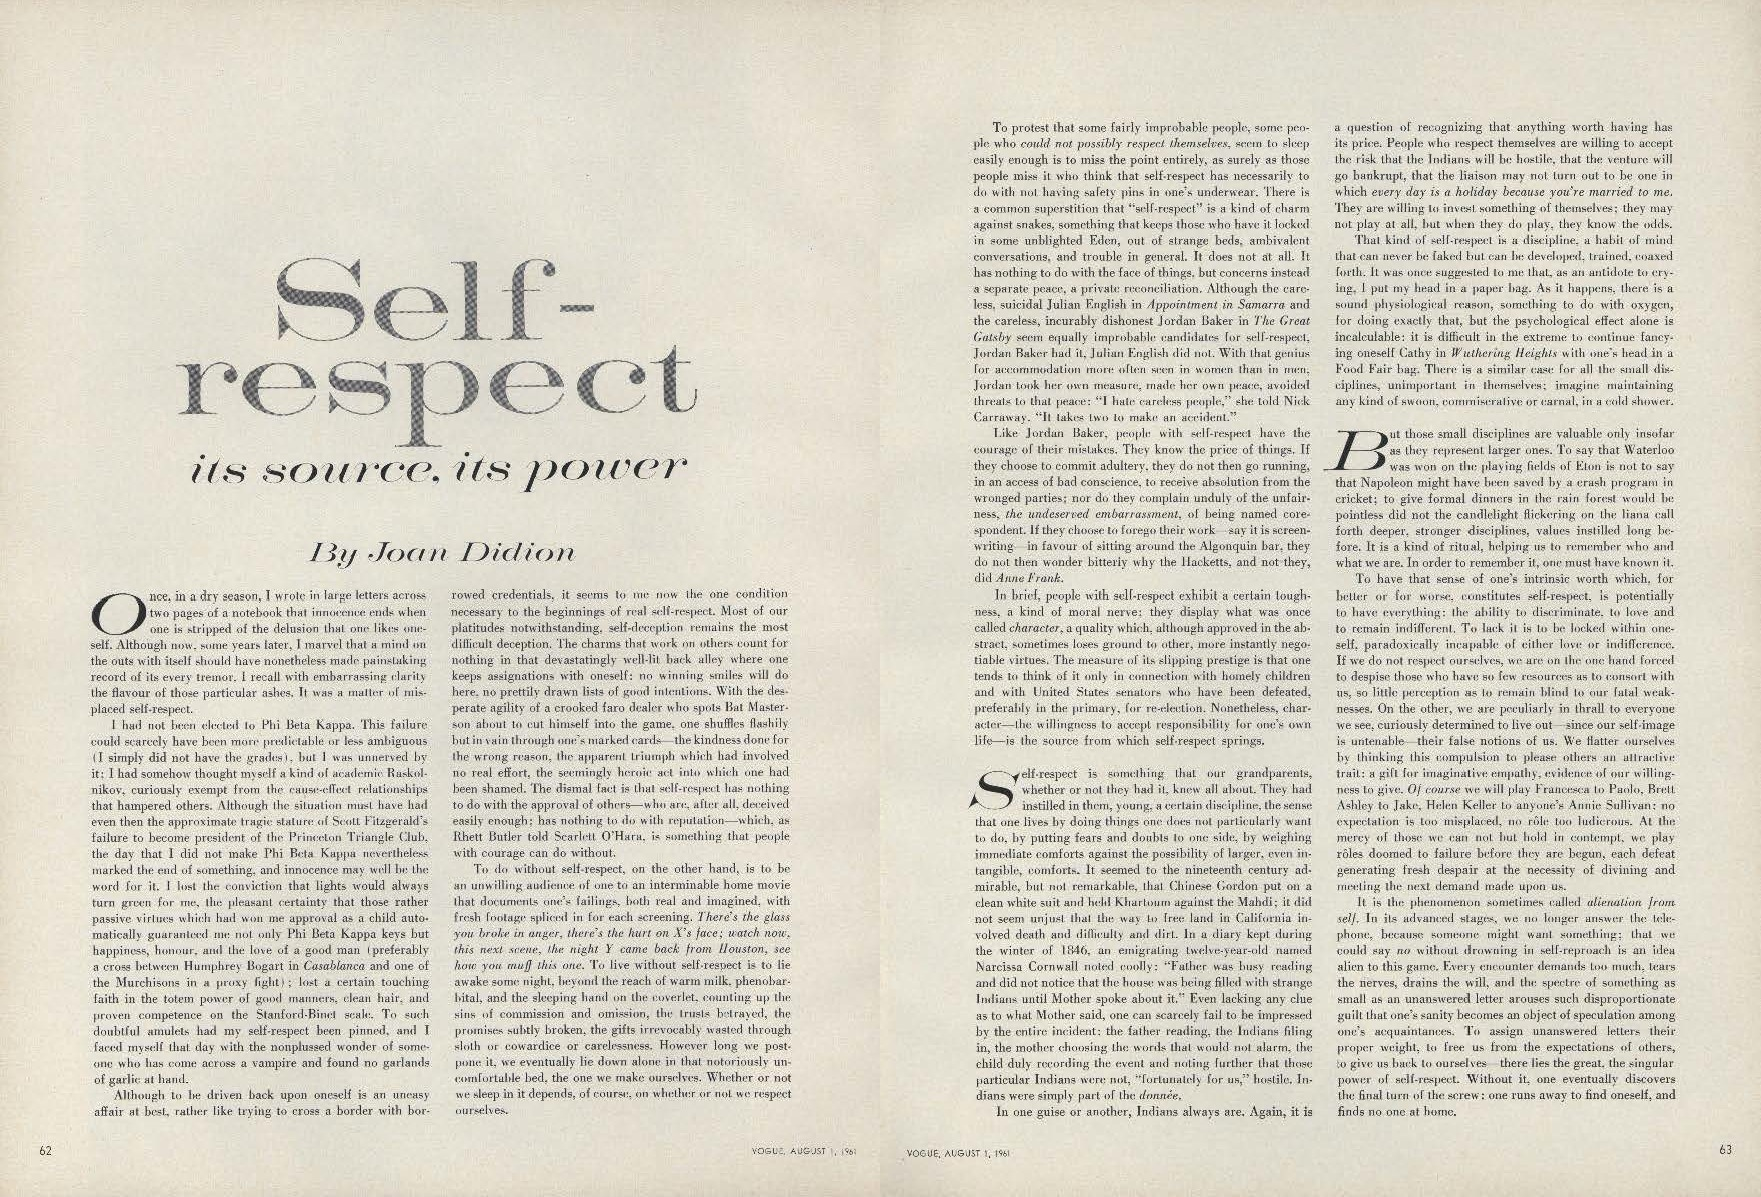 essay on self respect on selfrespect joan didionsessay from the on self respect joan didion s essay from the pages of vogue on self respect joan